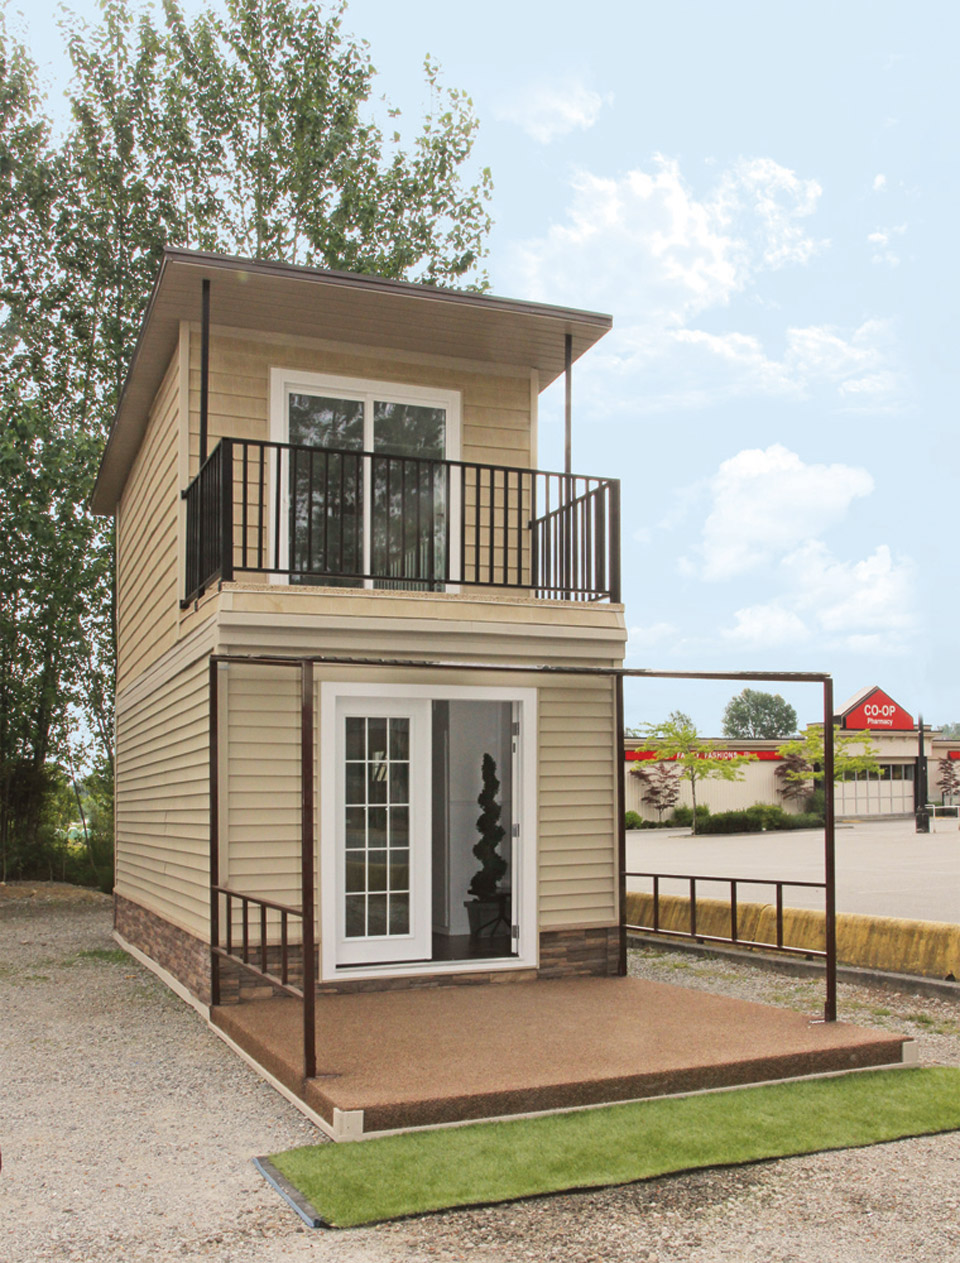 The eagle 1 a 350 sq ft 2 story steel framed micro home for Cheapest 2 story house to build